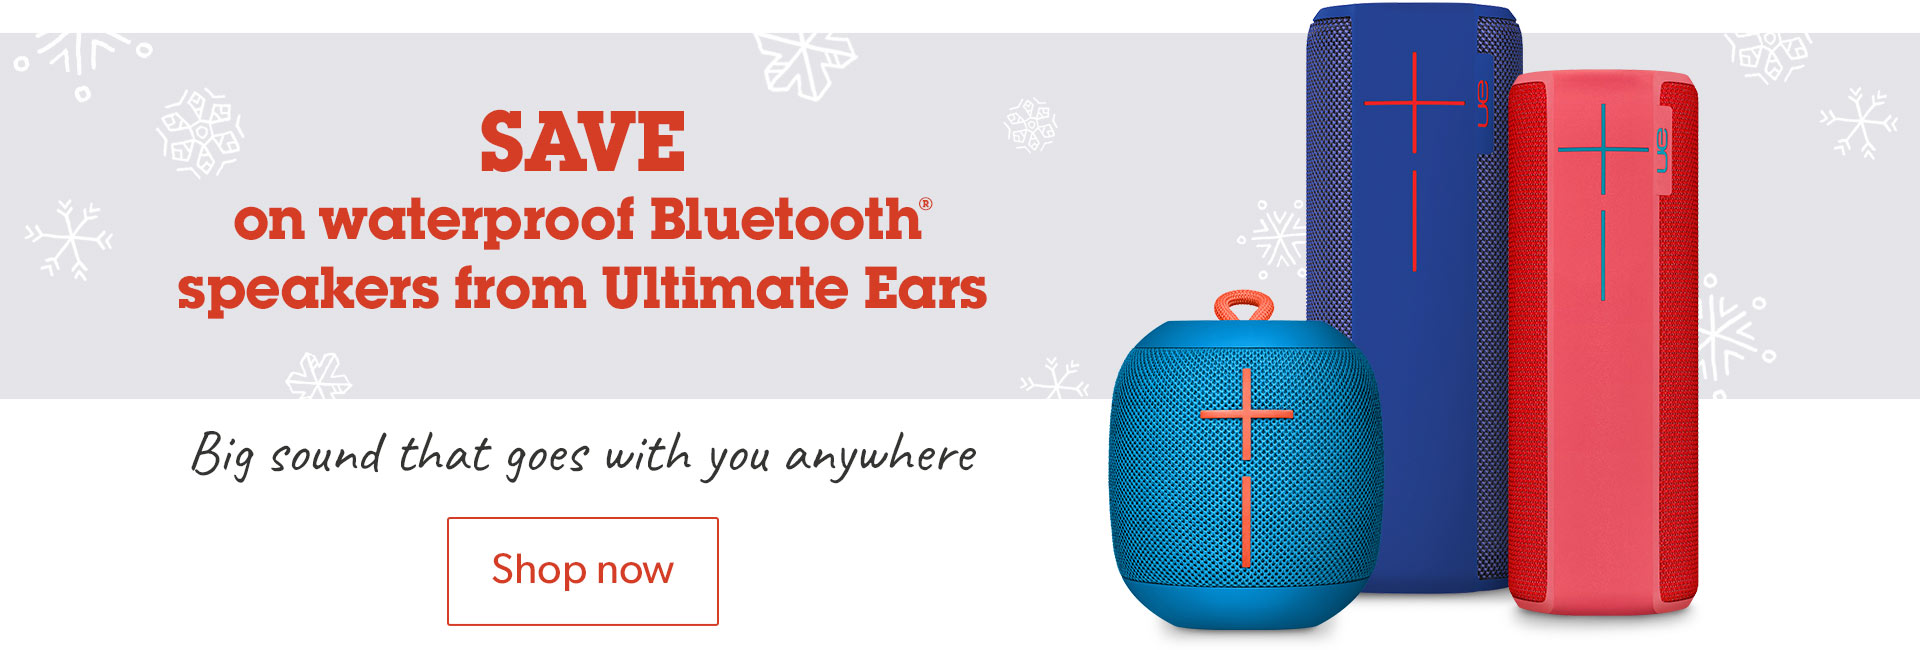 Save on waterproof Bluetooth® speakers from Ultimate Ears